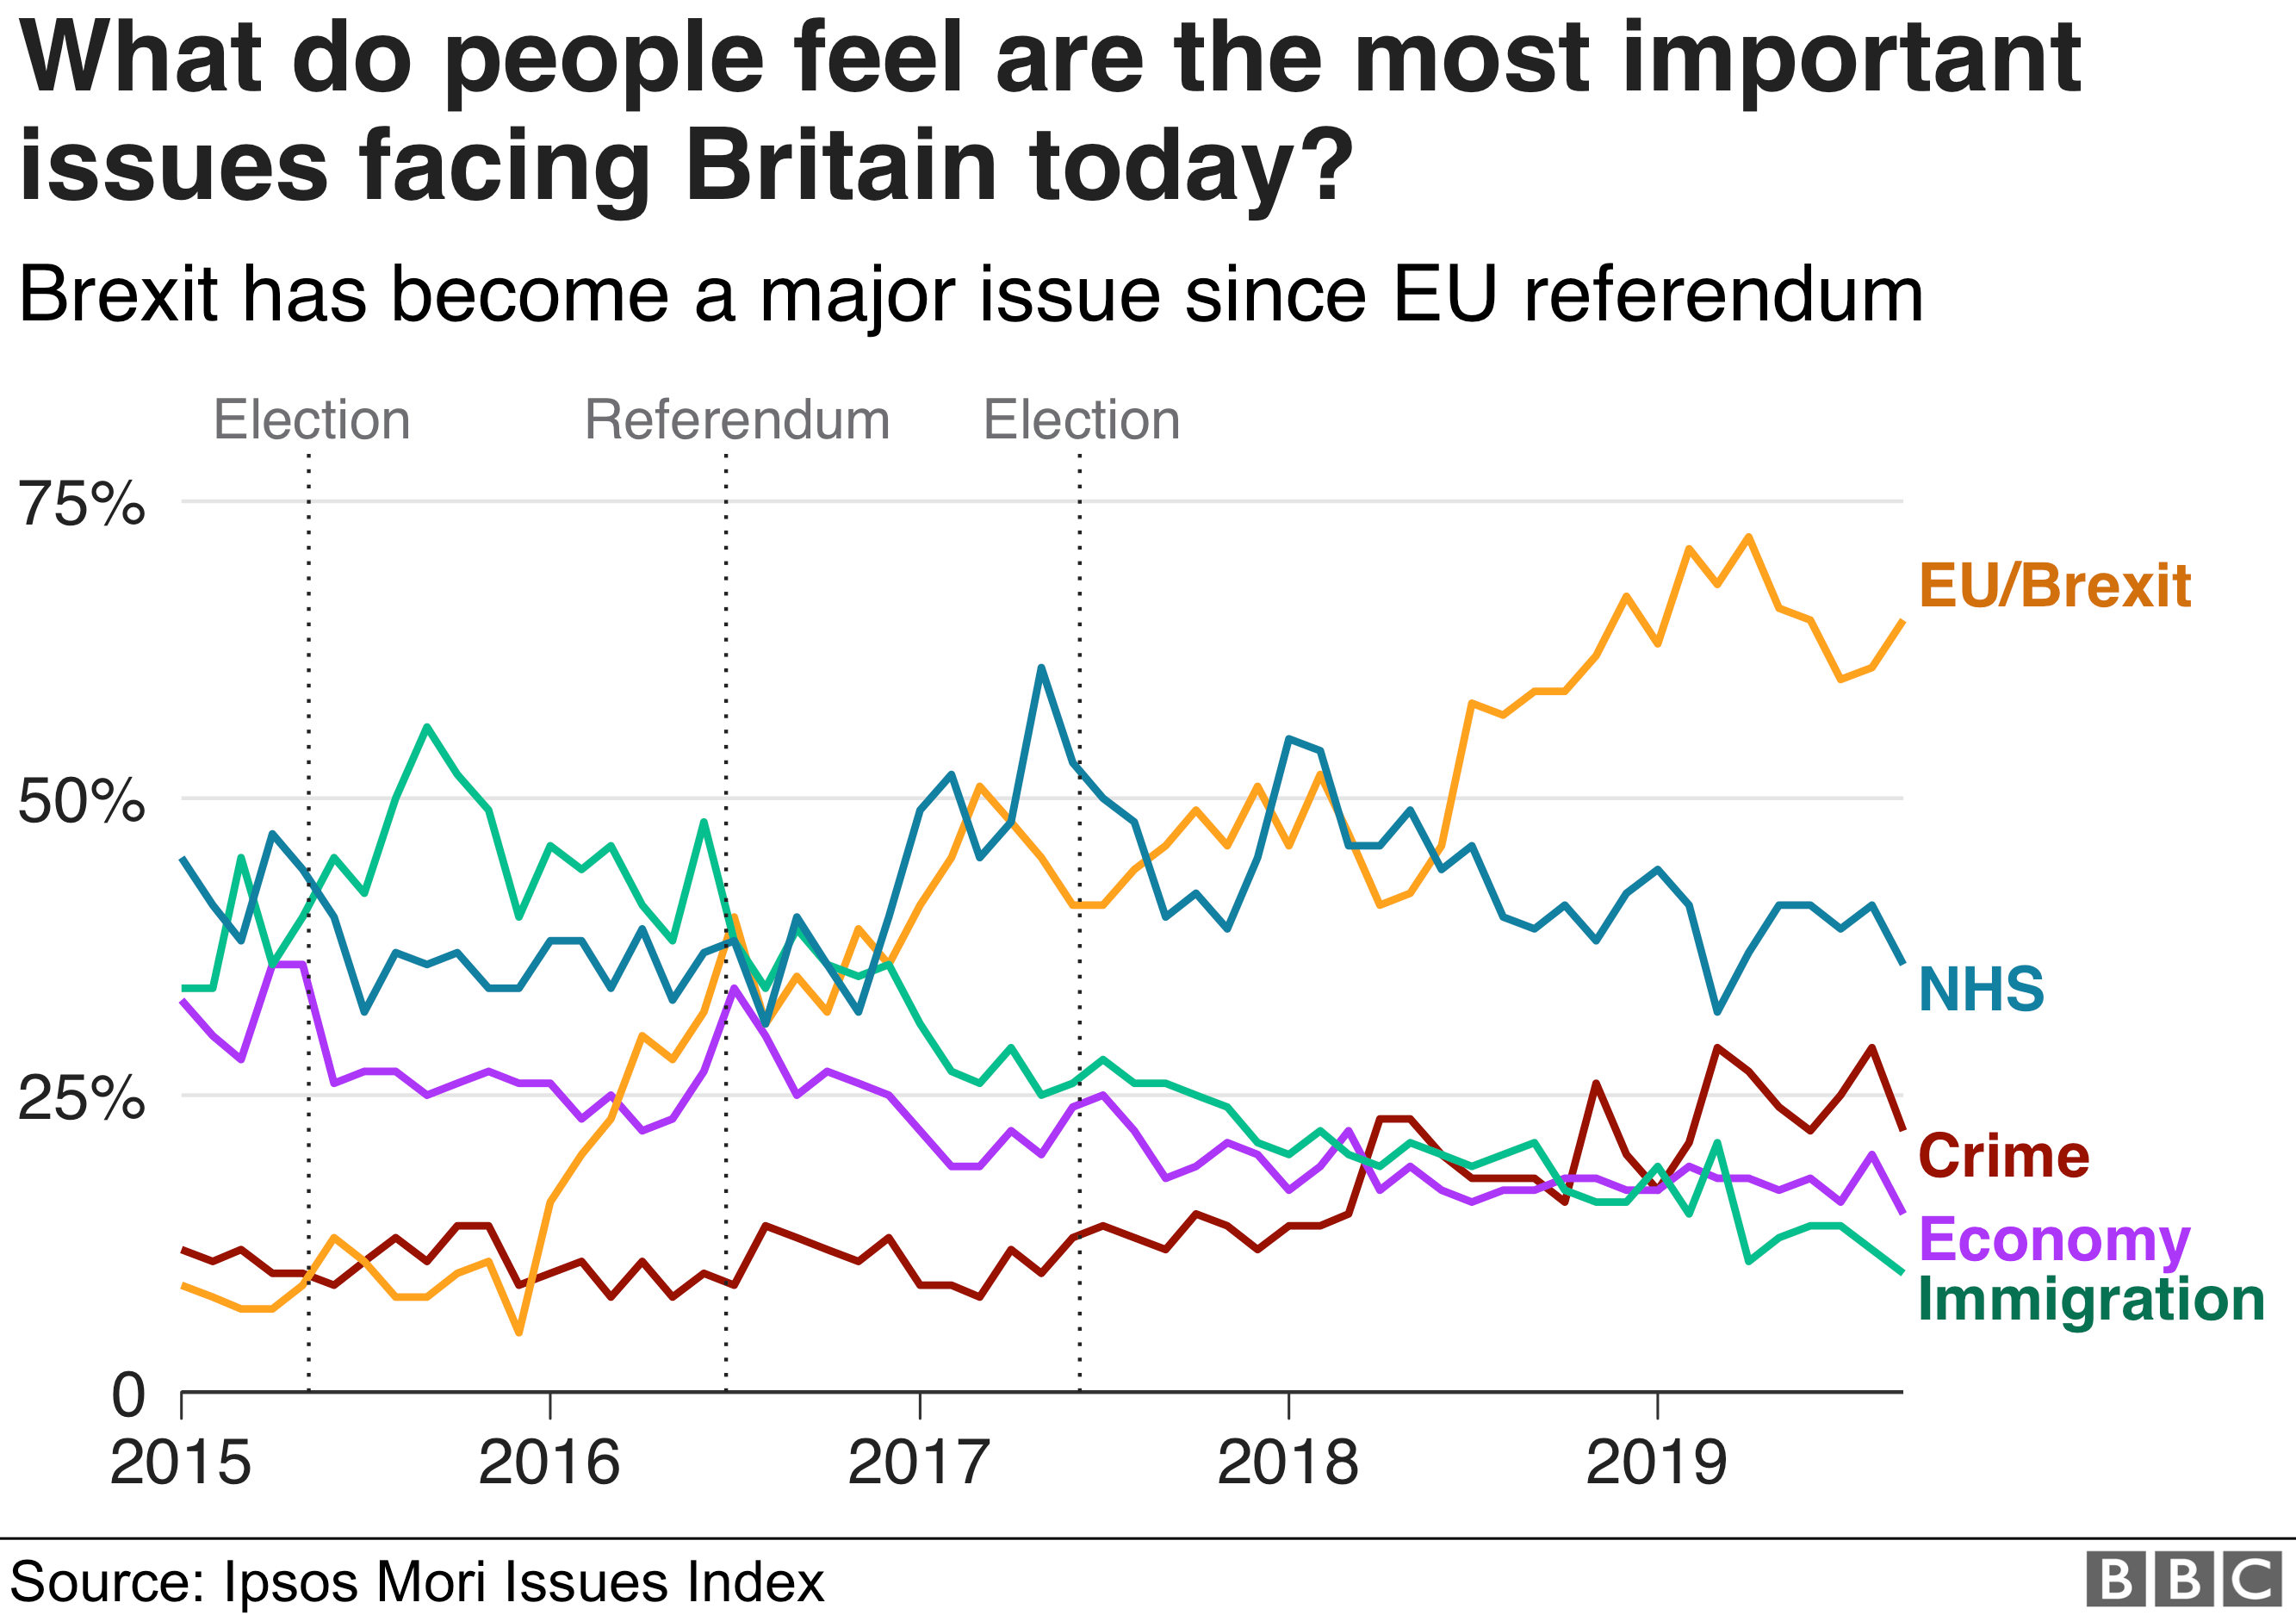 Graph of issues concerning voters over the years. Latest figures show greatest concern is EU/Brexit, followed by NHS, Crime, Economy then Immigration